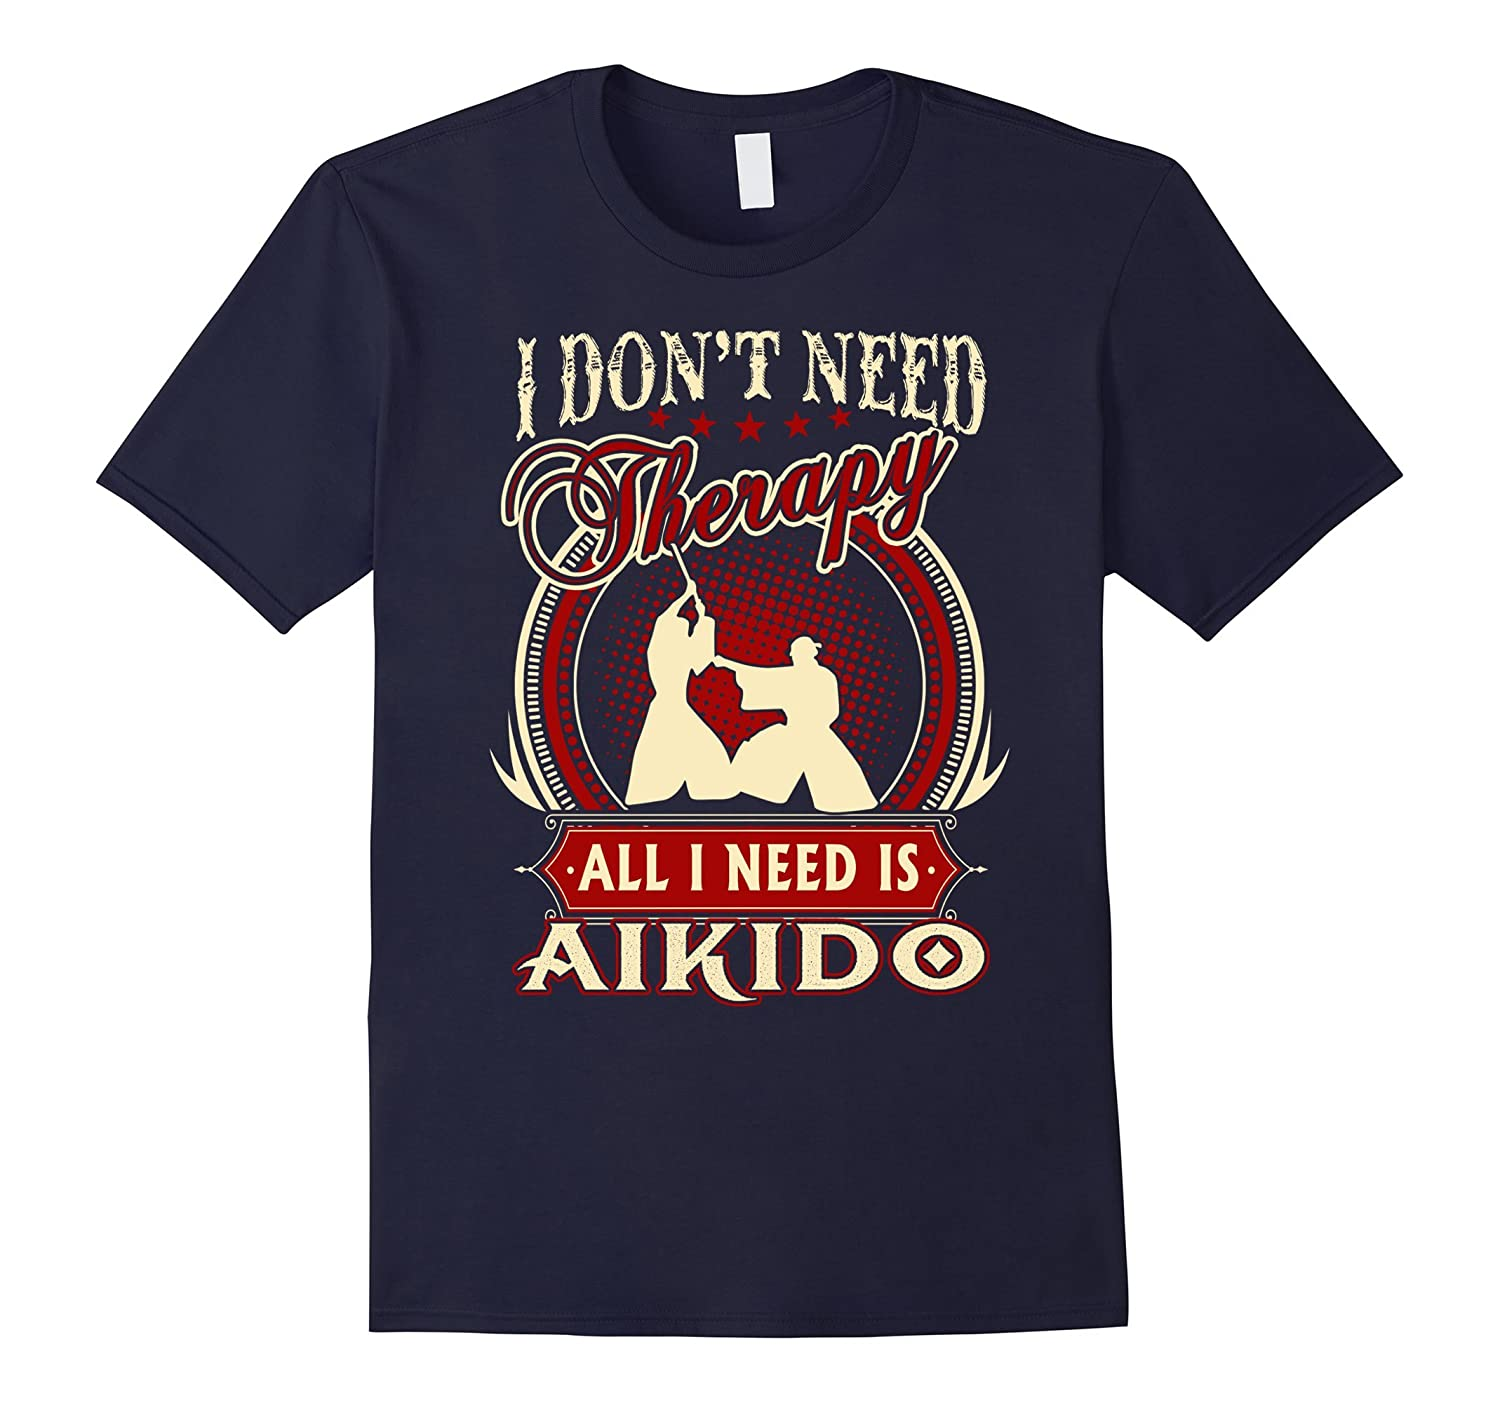 Aikido T-Shirt - I don't need therapy All I need is Aikido-CL